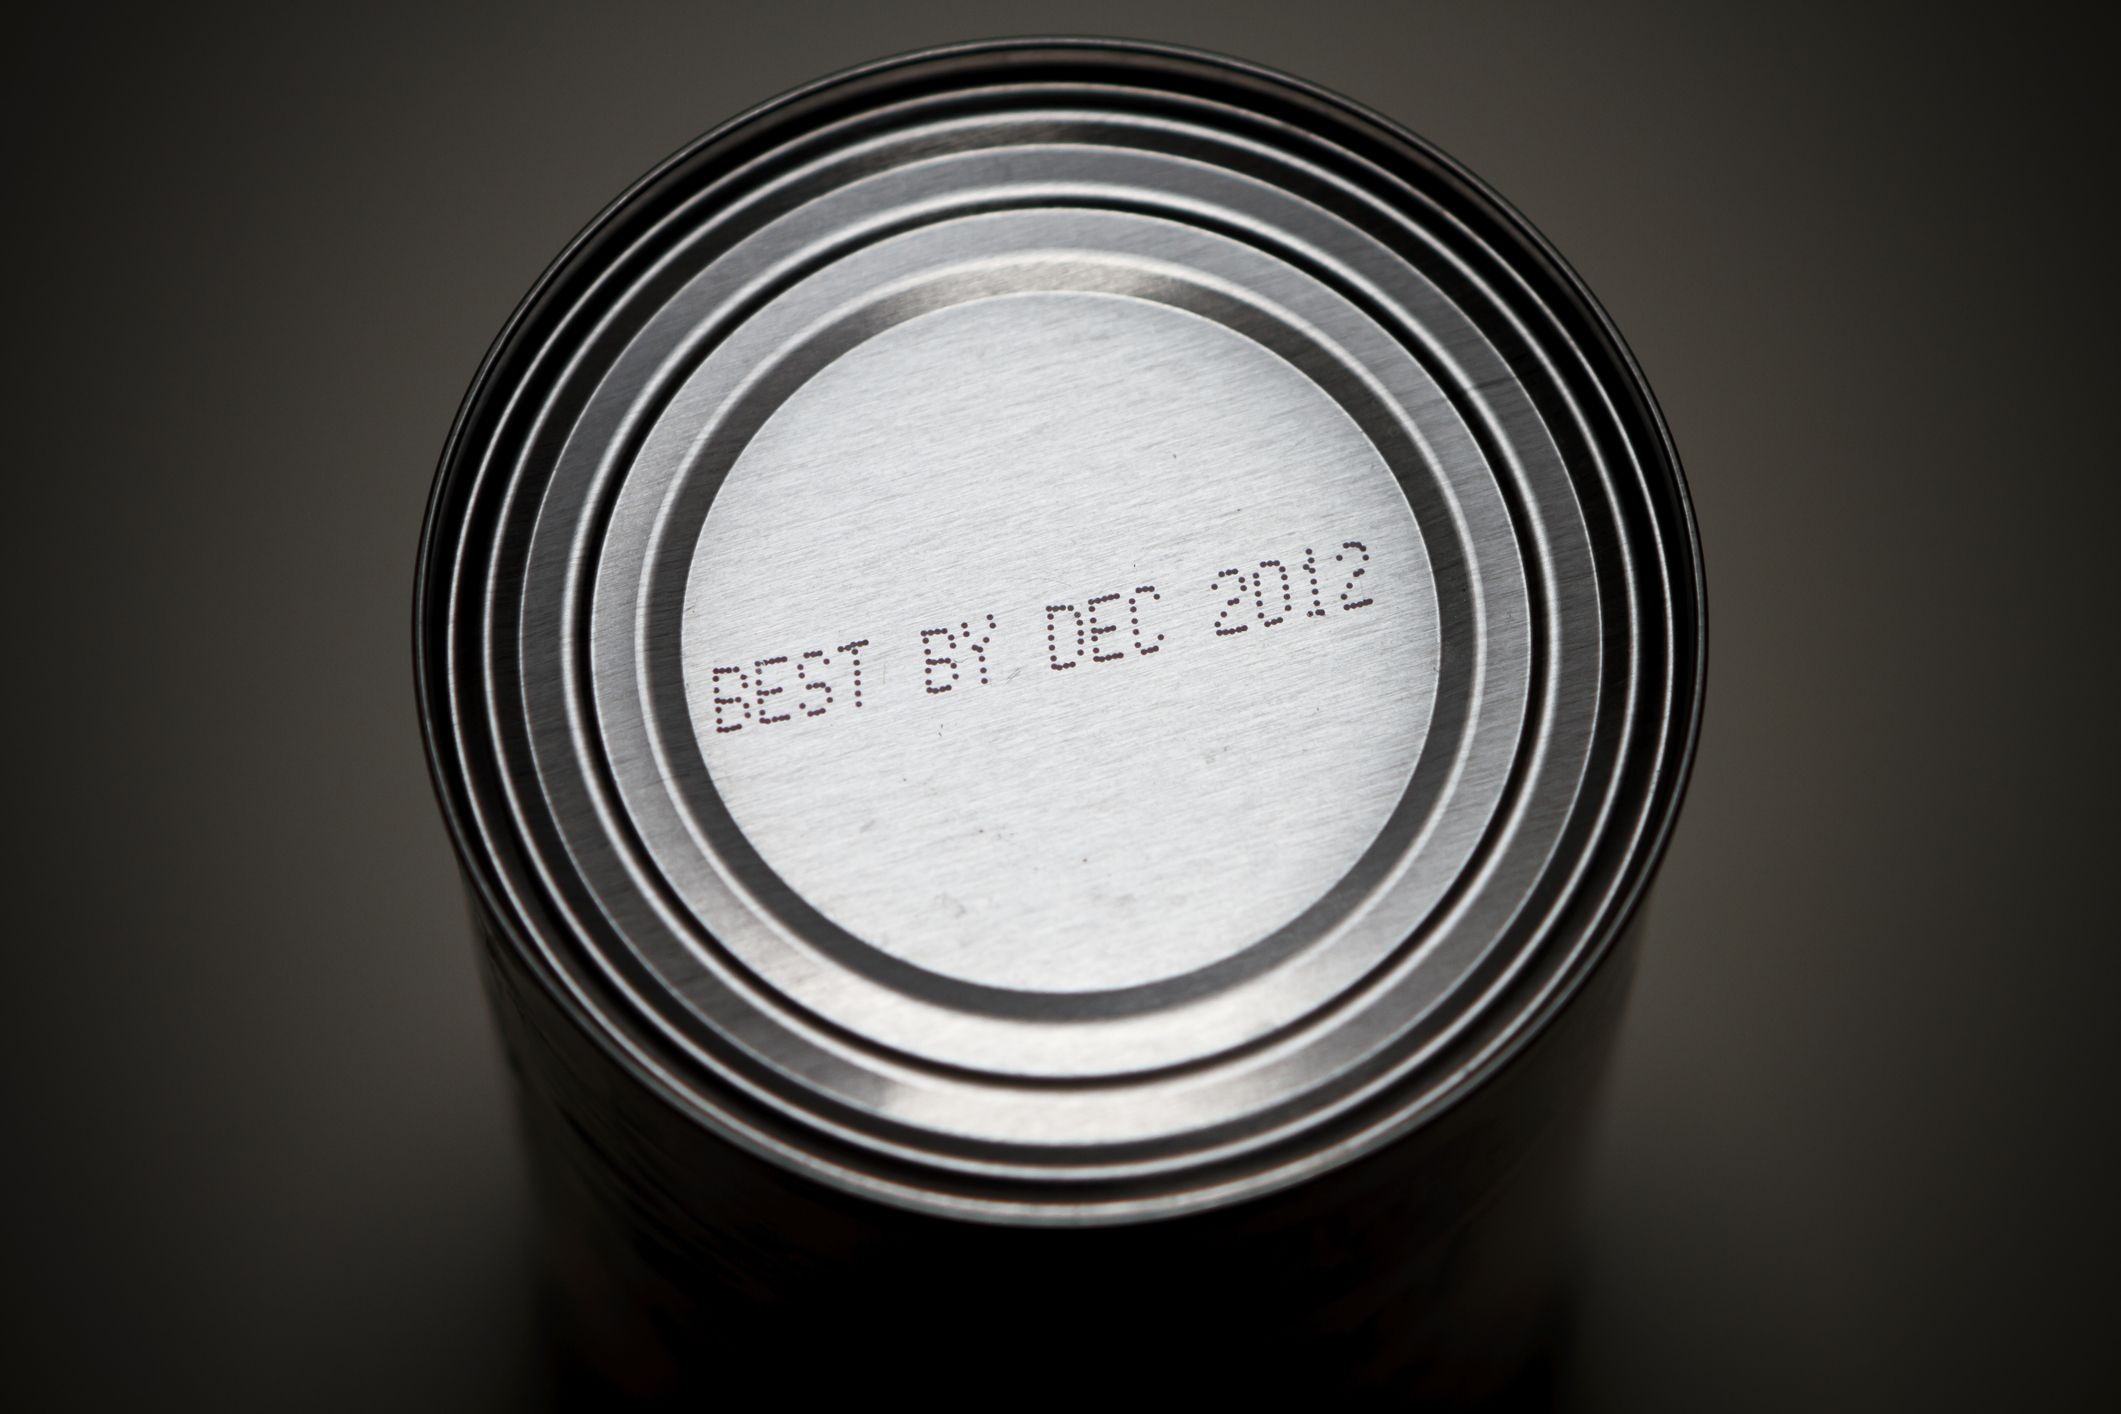 Best by date on bottom of can